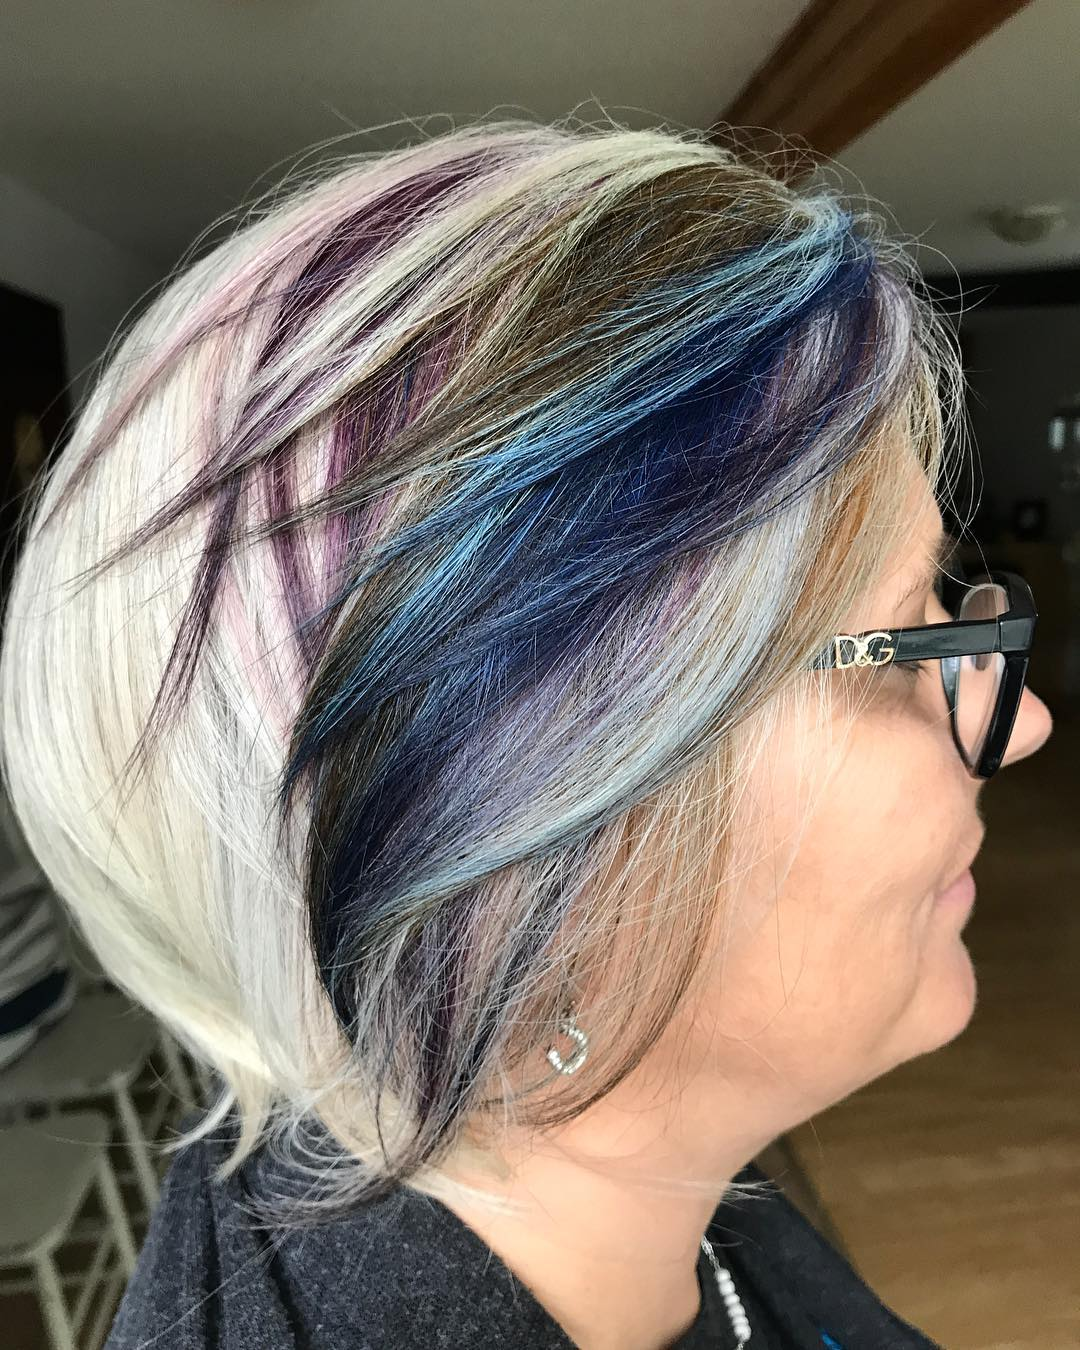 White Gray Hairstyle with Colorful Highlights